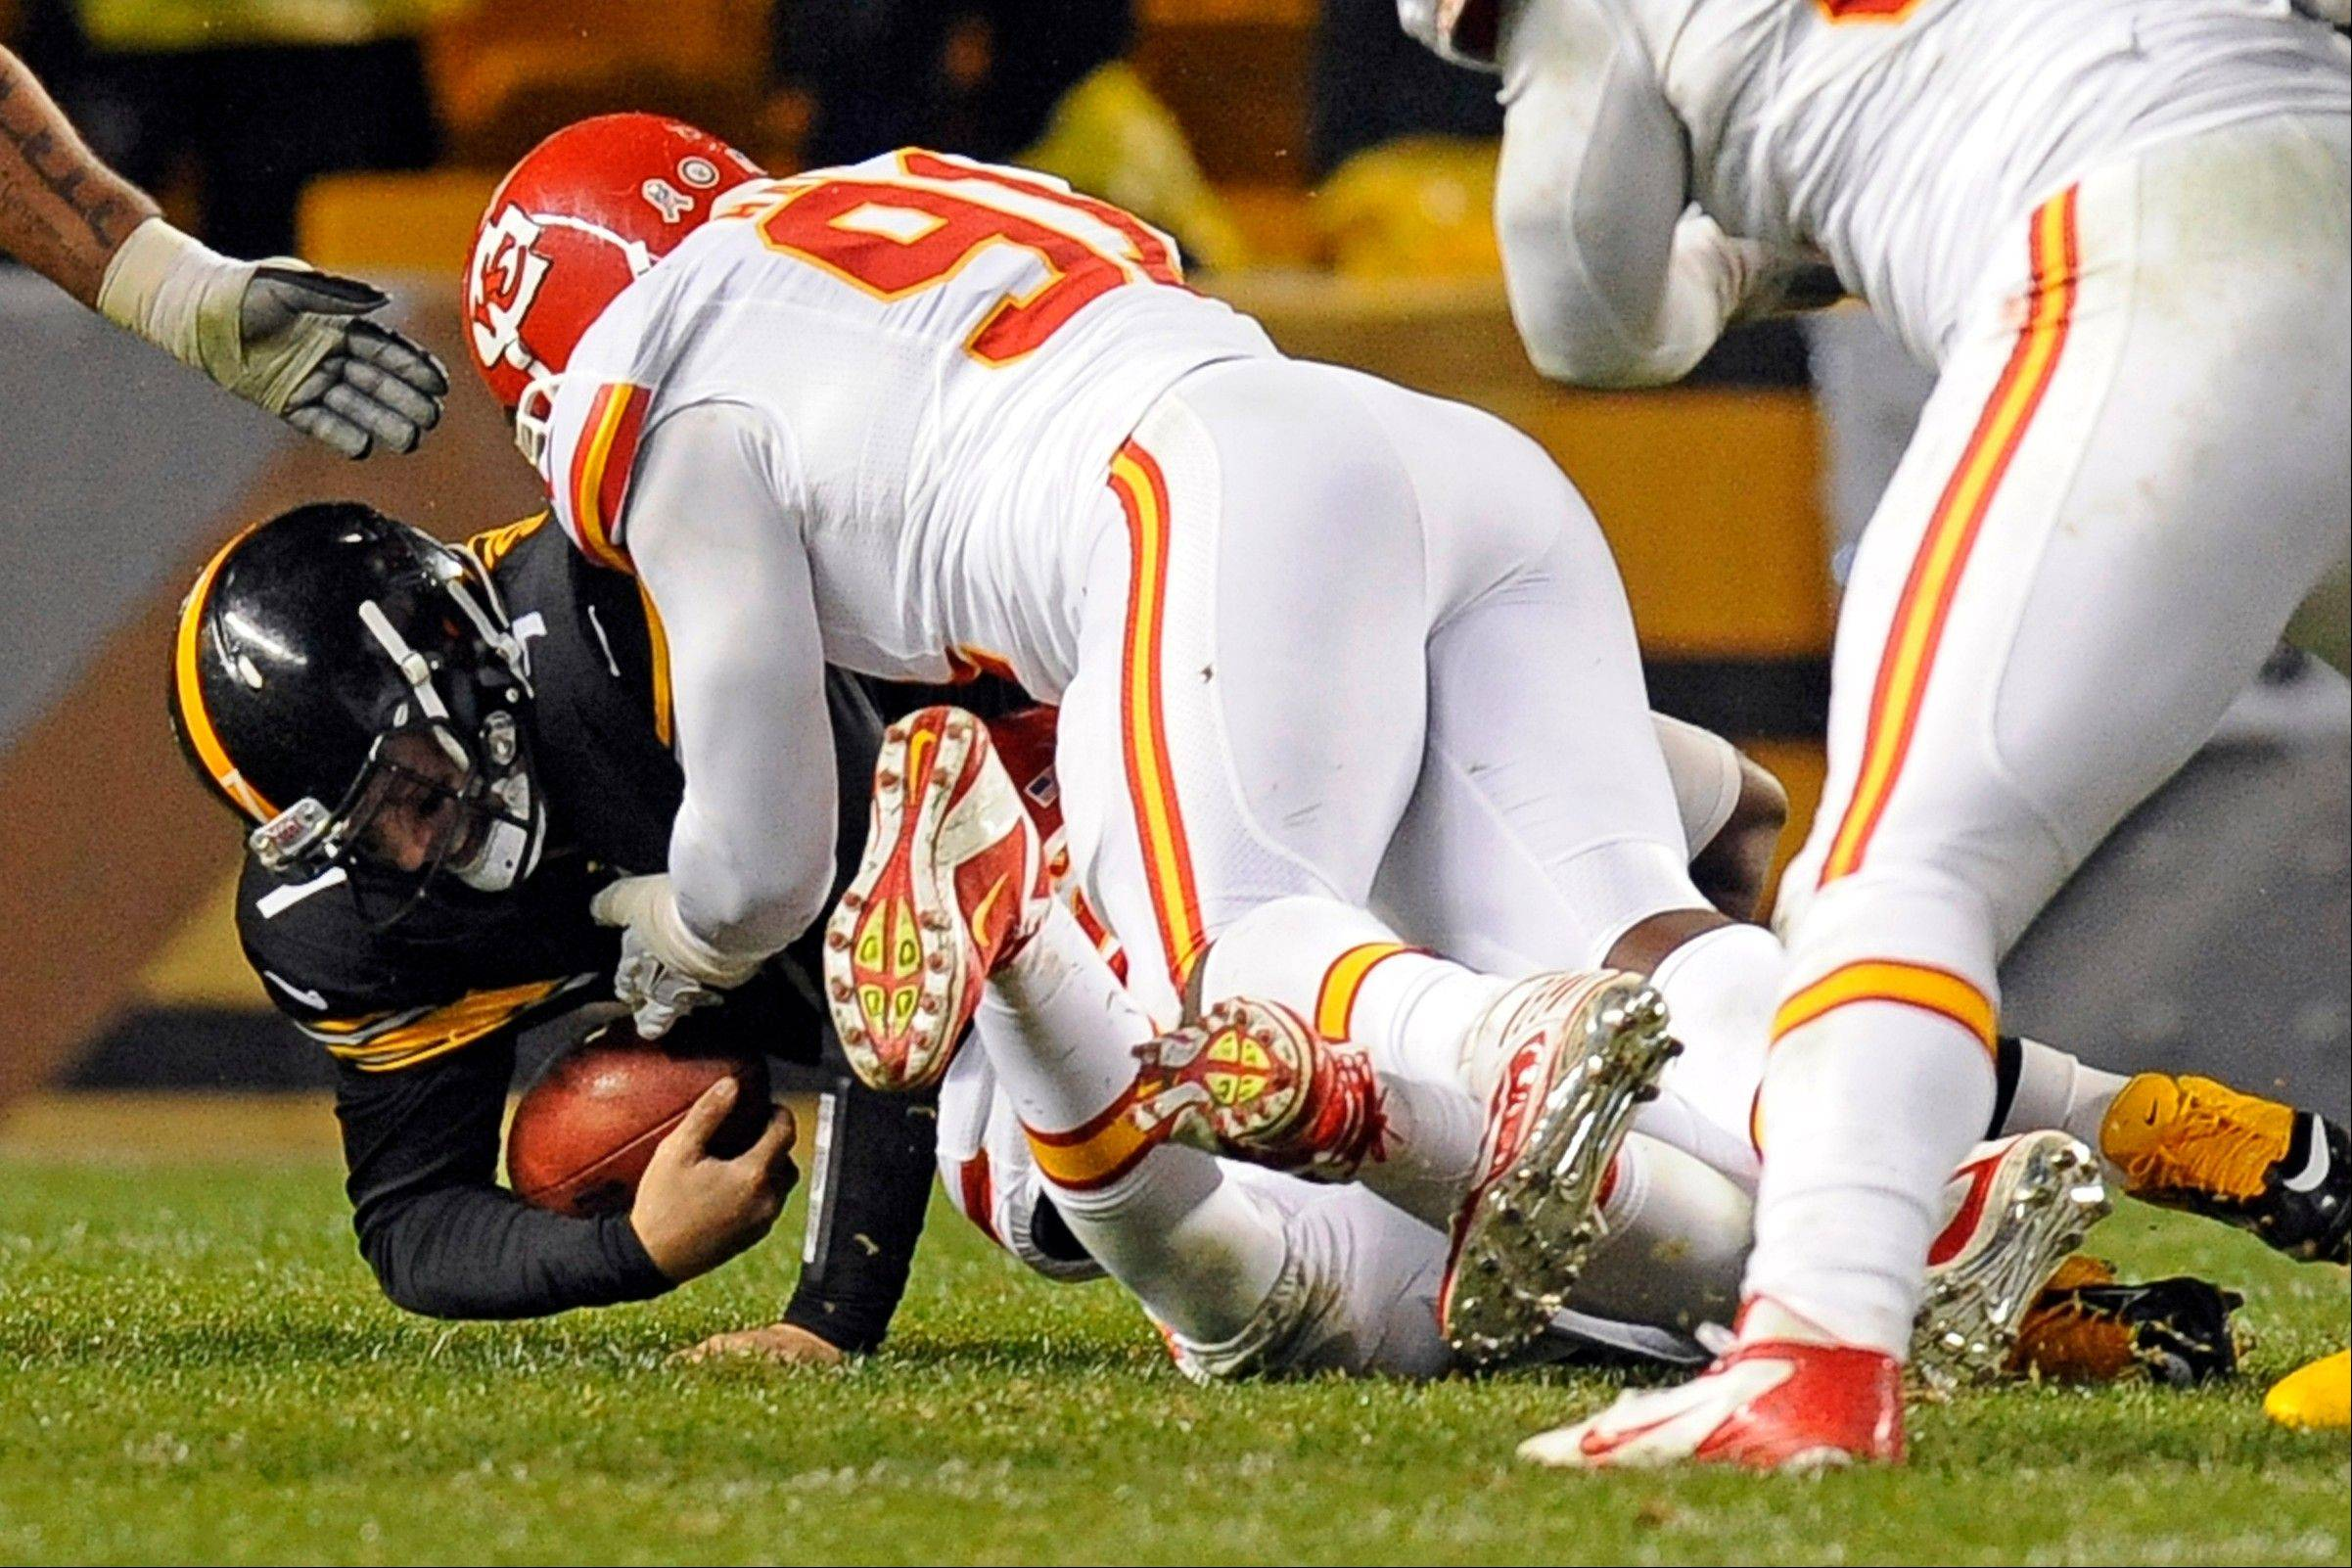 Pittsburgh Steelers quarterback Ben Roethlisberger is sacked by Kansas City Chiefs outside linebacker Tamba Hali Monday during the third quarter in Pittsburgh. Roethlisberger will not play against the Ravens on Sunday.